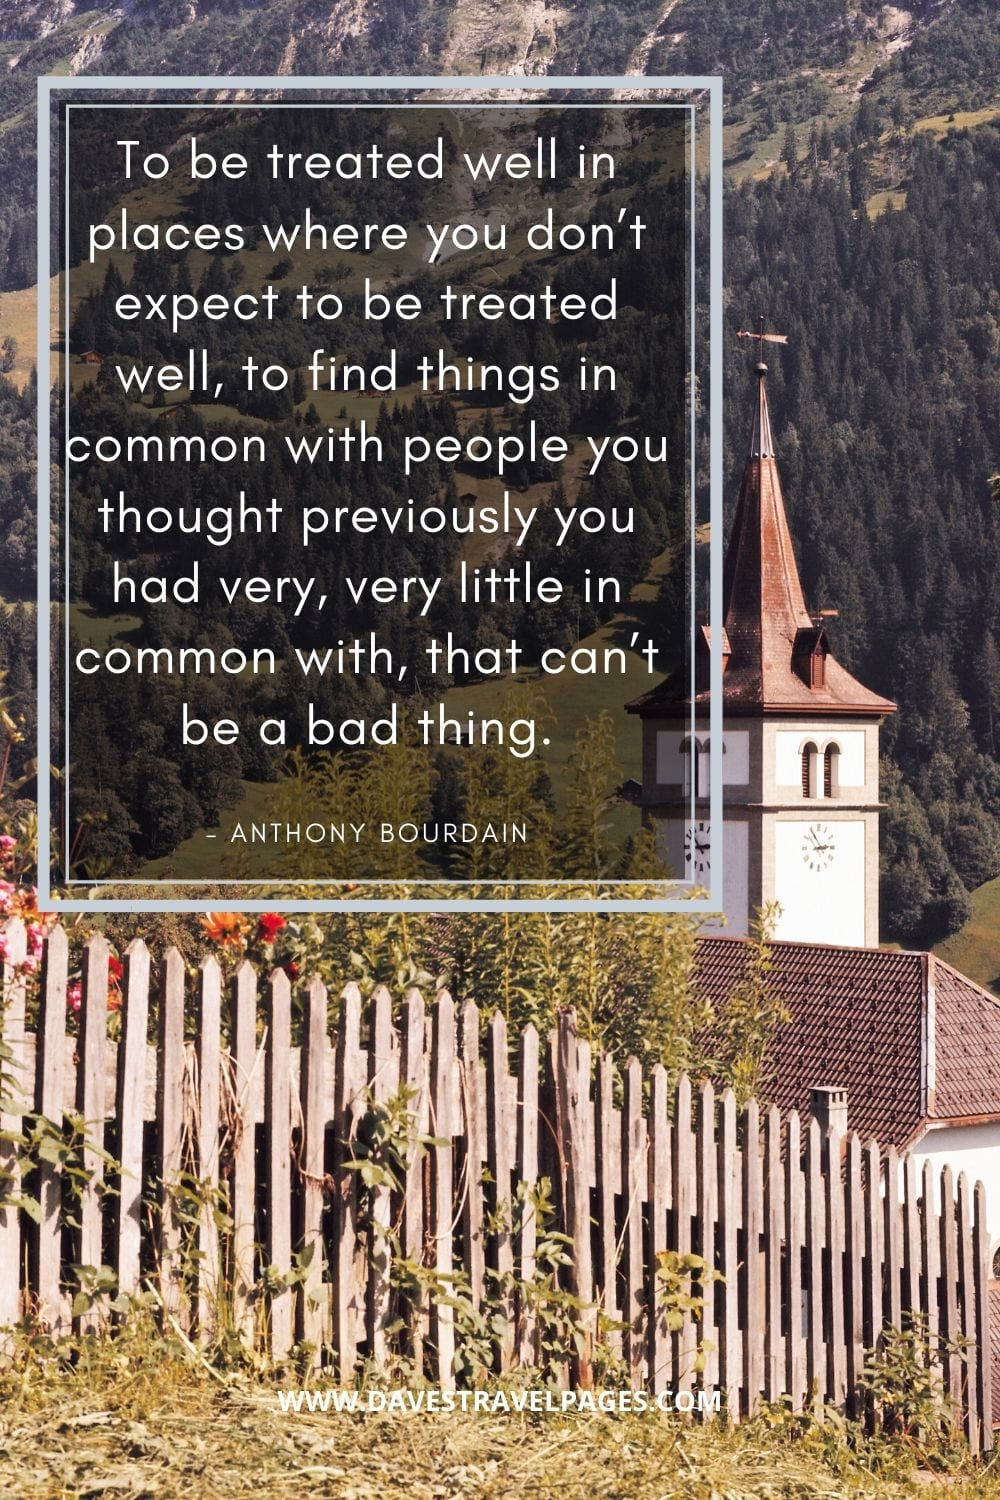 """""""To be treated well in places where you don't expect to be treated well, to find things in common with people you thought previously you had very, very little in common with, that can't be a bad thing."""" – Anthony Bourdain"""